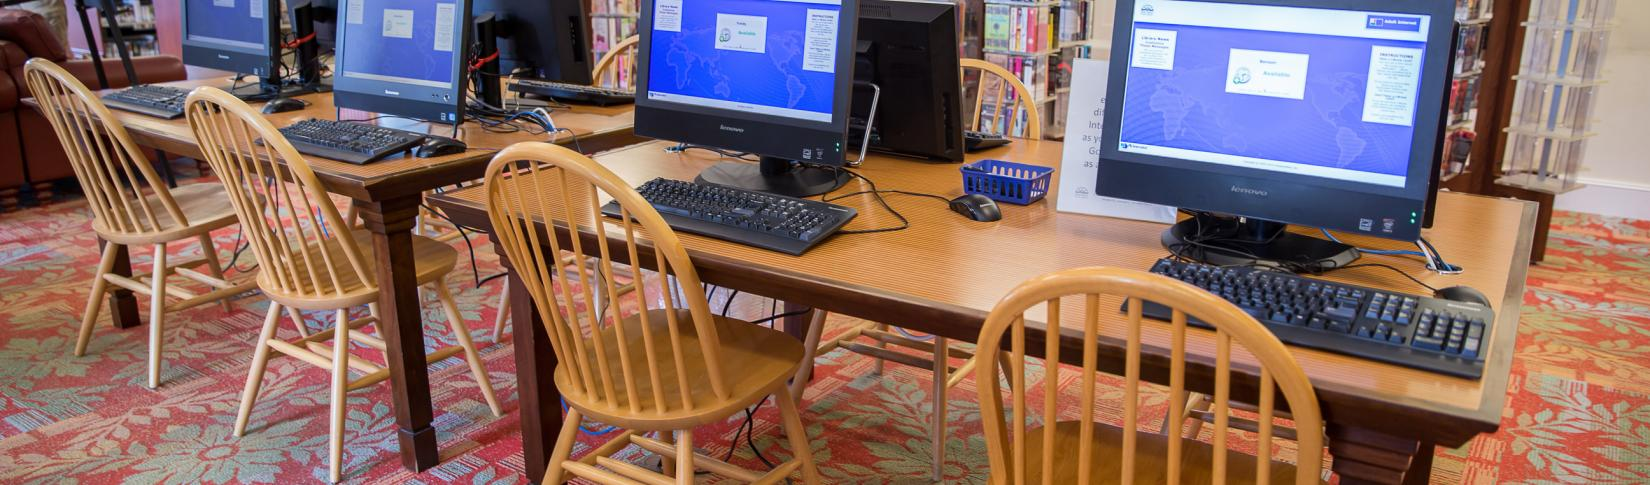 Port Hope Public Library computer workstations